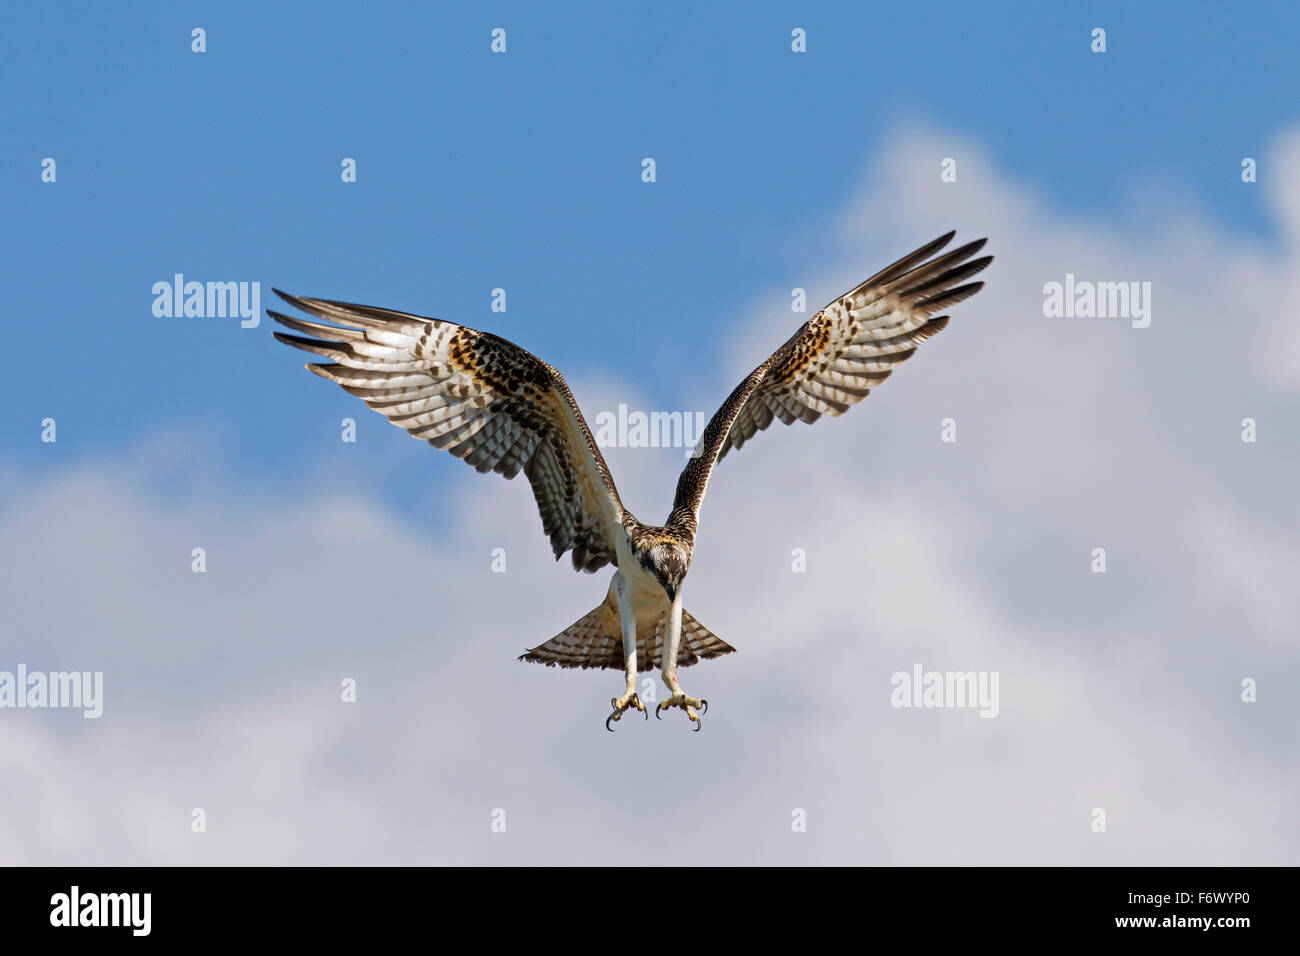 Osprey (Pandion haliaetus) hovering and ready to plunge for fish in lake - Stock Image